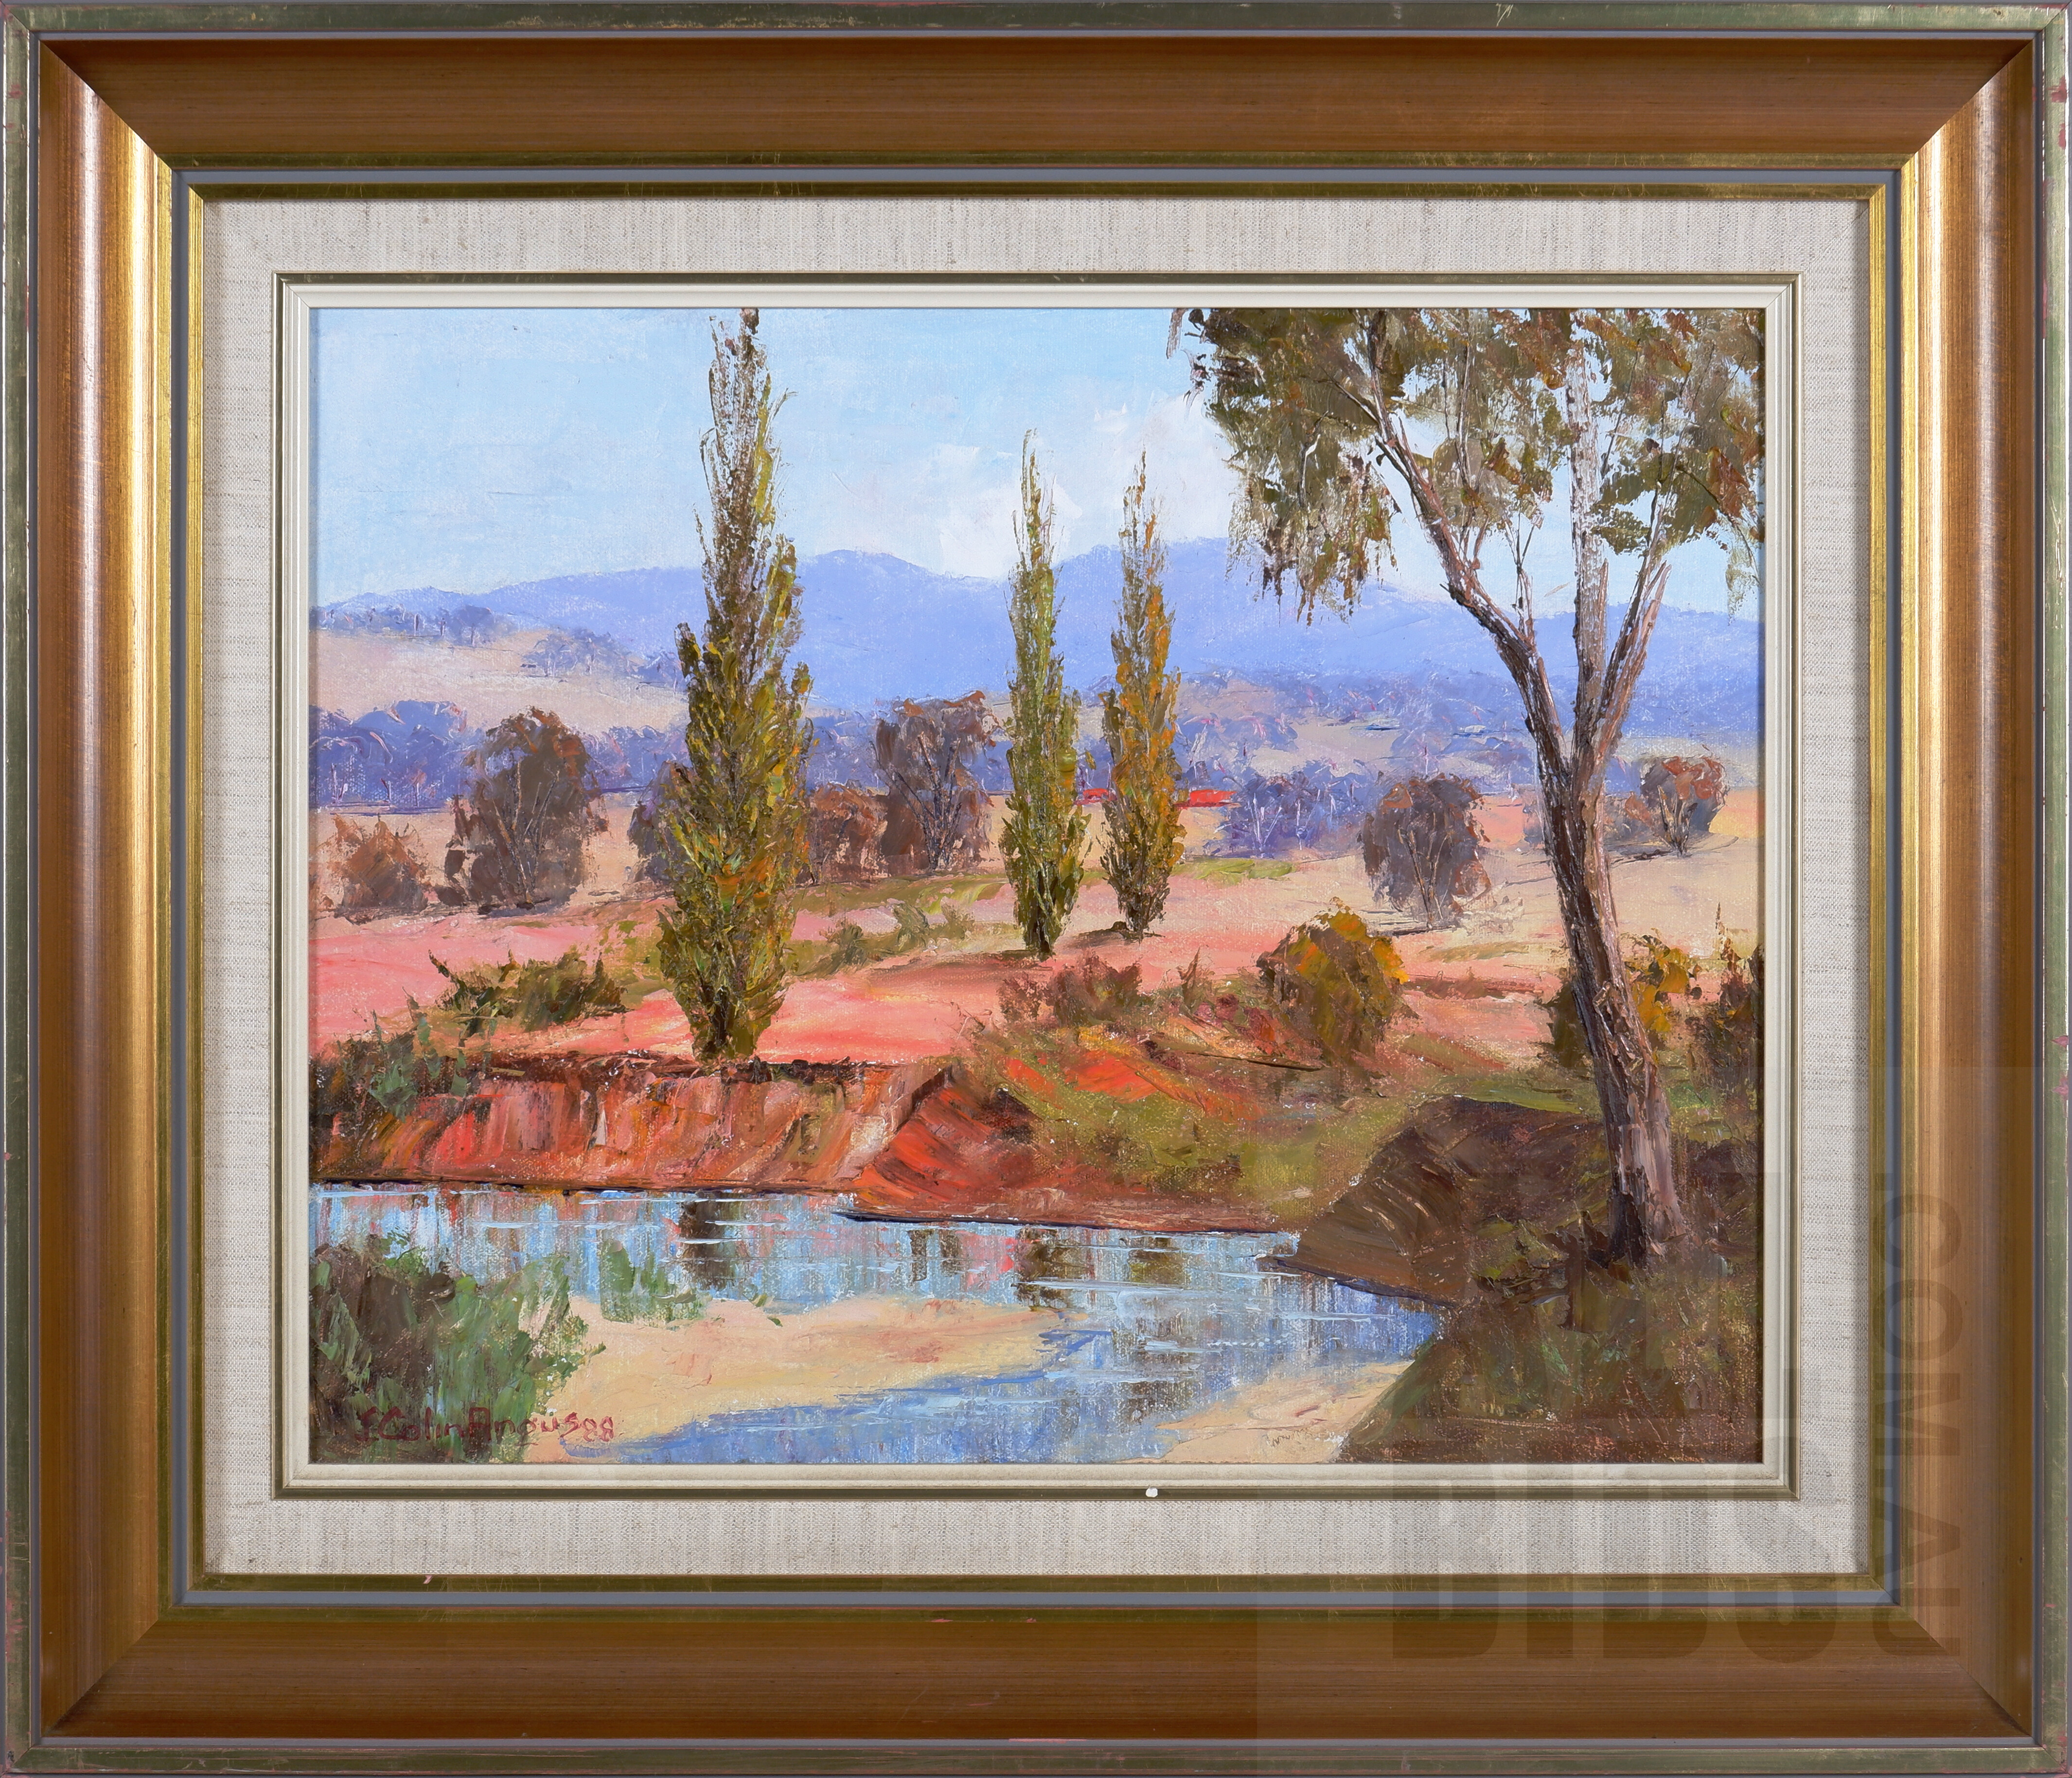 'John Colin Angus (1907-2002), Old Goldfield 1988, Allans Flat, Oil on Canvas on Board, 39 x 49 cm'